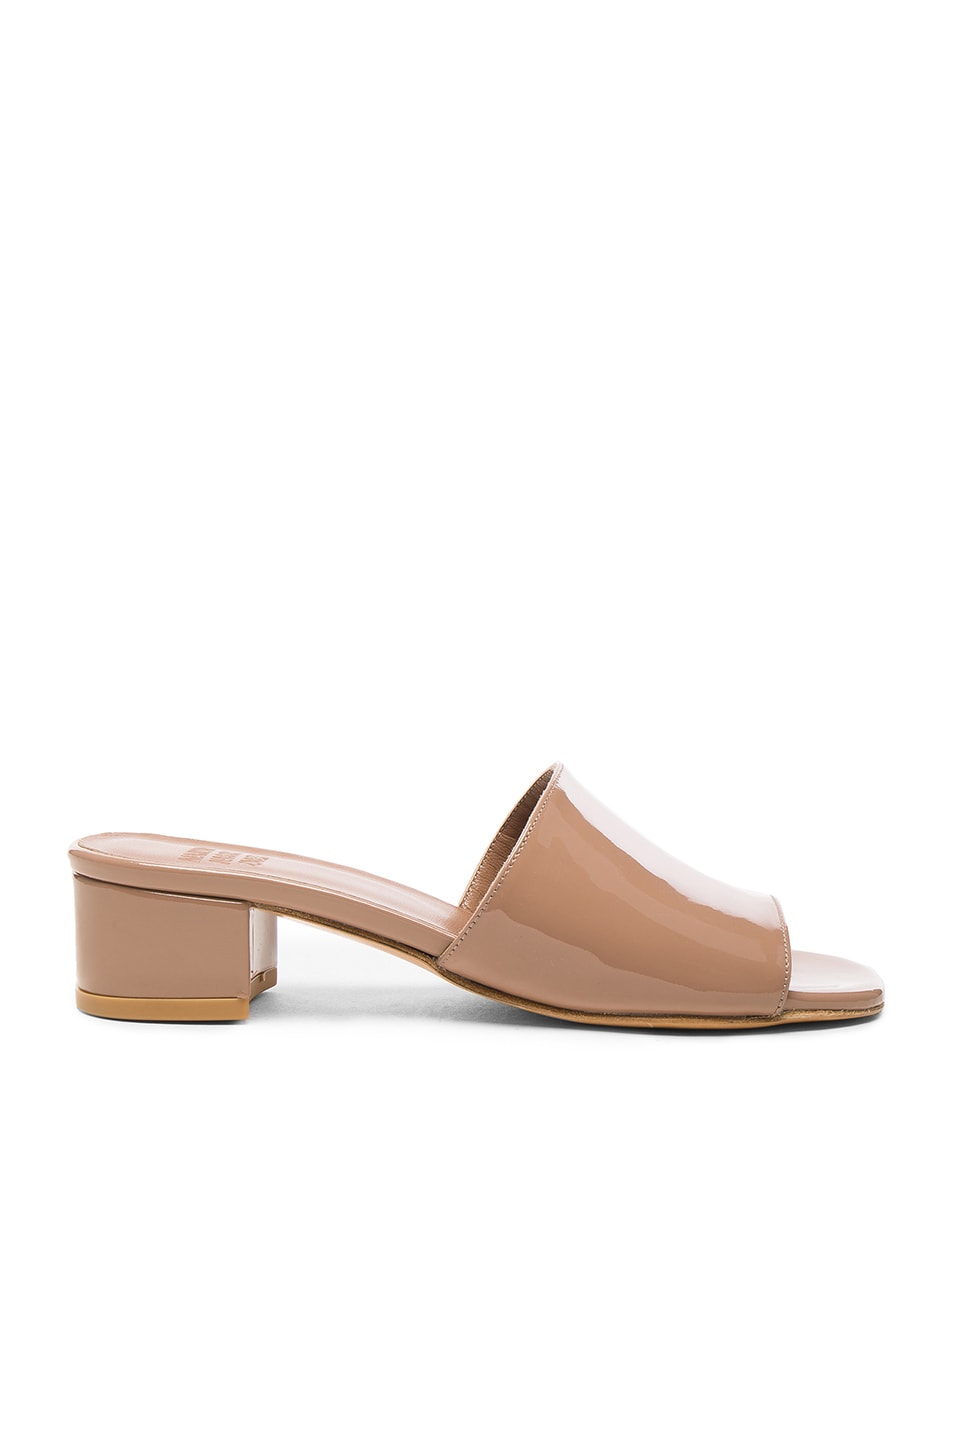 Image 1 of Maryam Nassir Zadeh Patent Leather Sophie Slide Heels in Taupe Patent